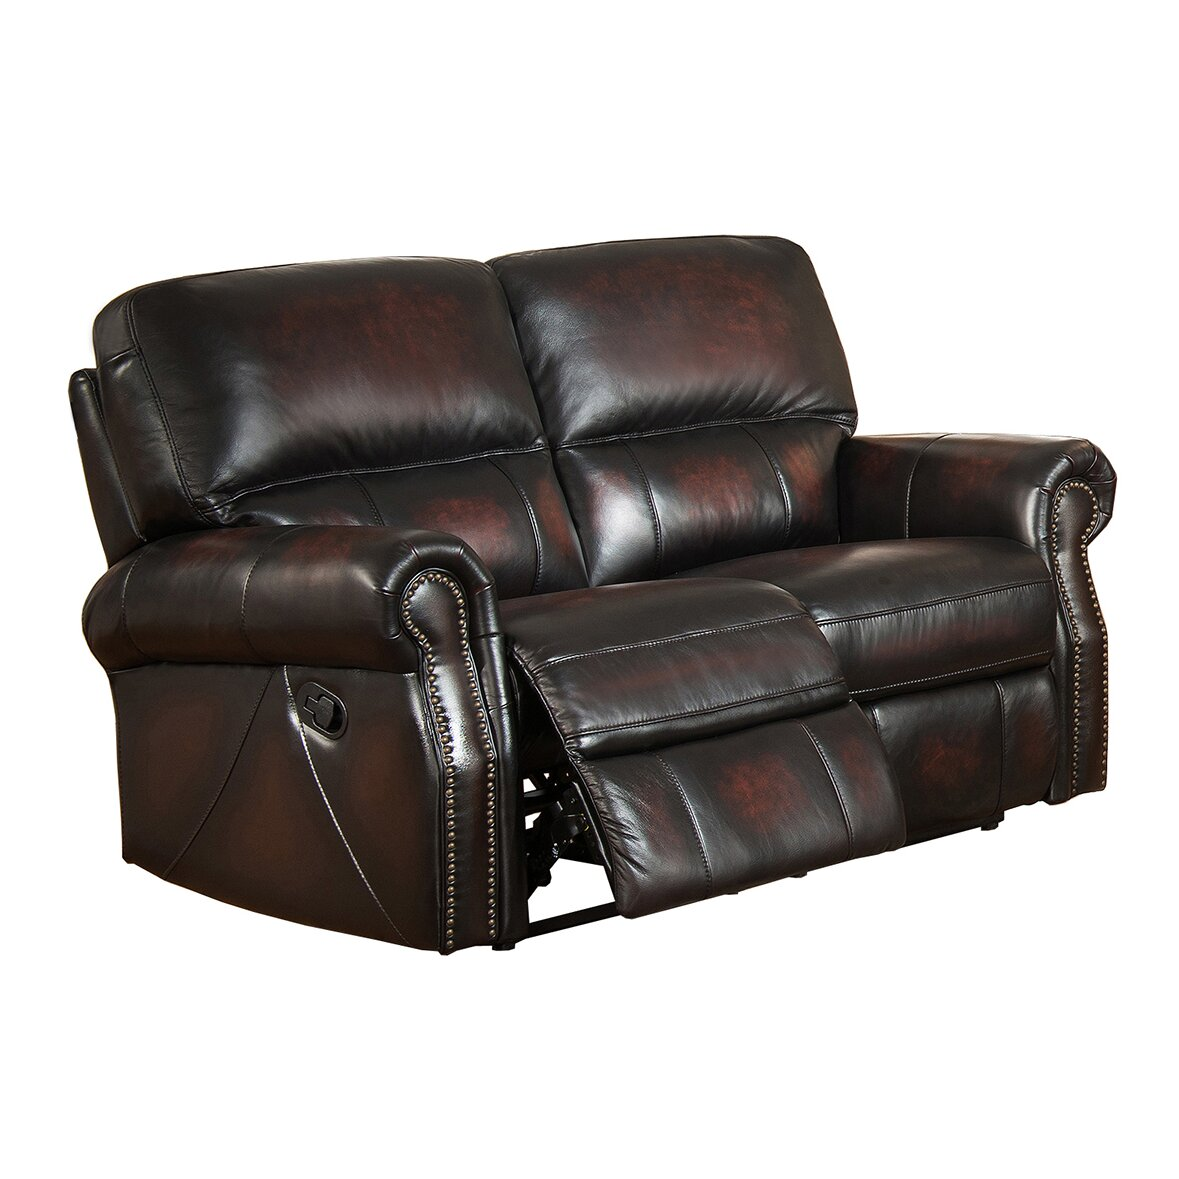 Amax nevada leather recliner sofa and loveseat set wayfair Leather sofa and loveseat recliner